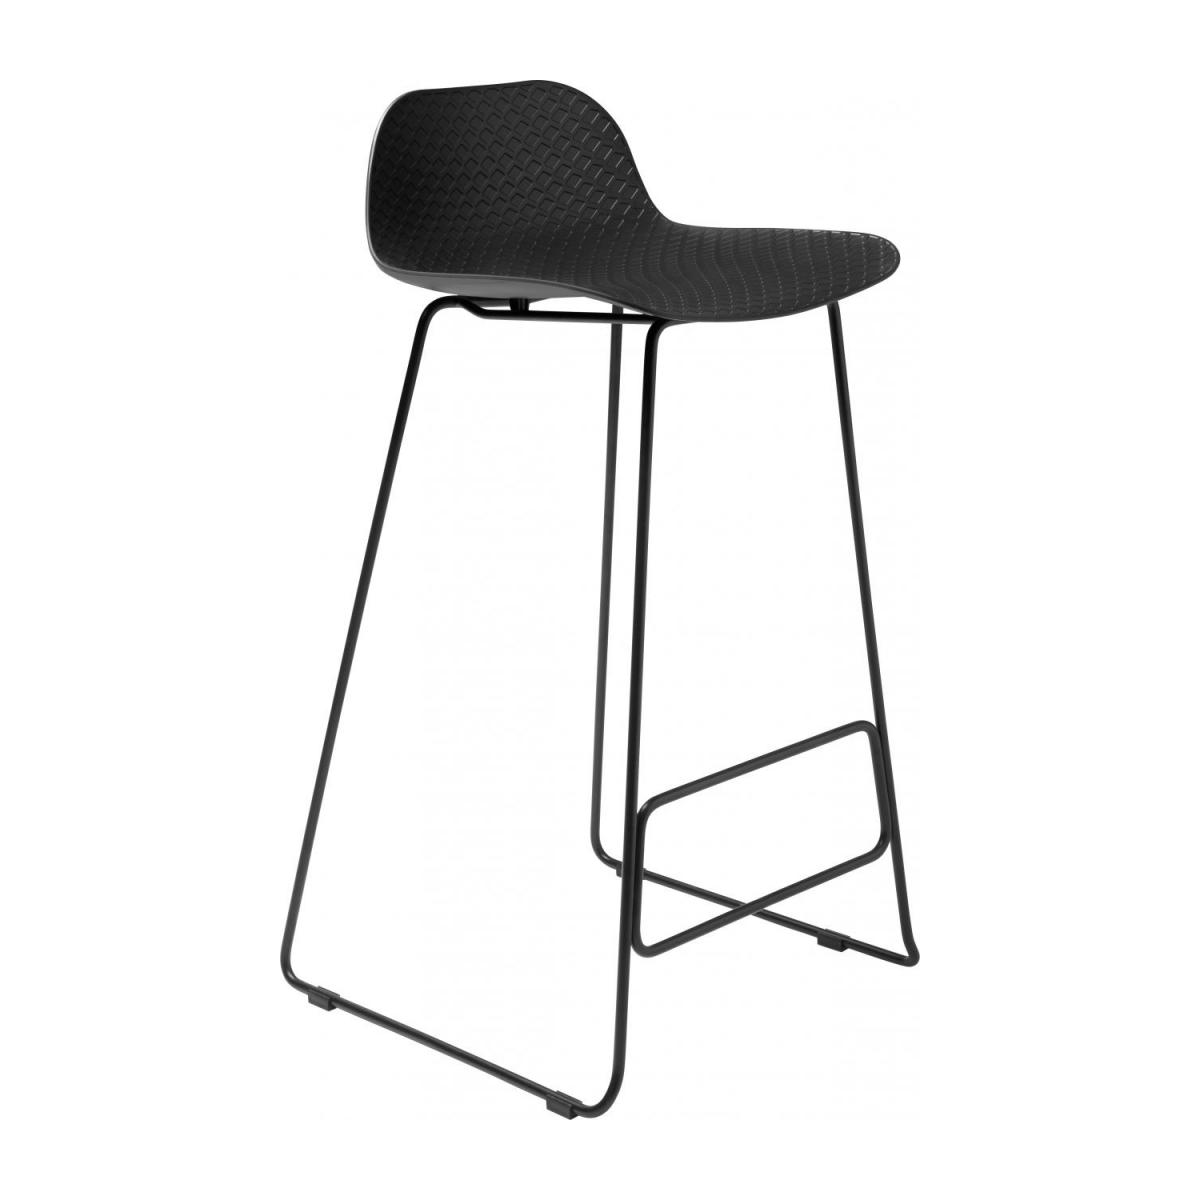 Black high stool in polypropylene and lacquered steel legs n°1